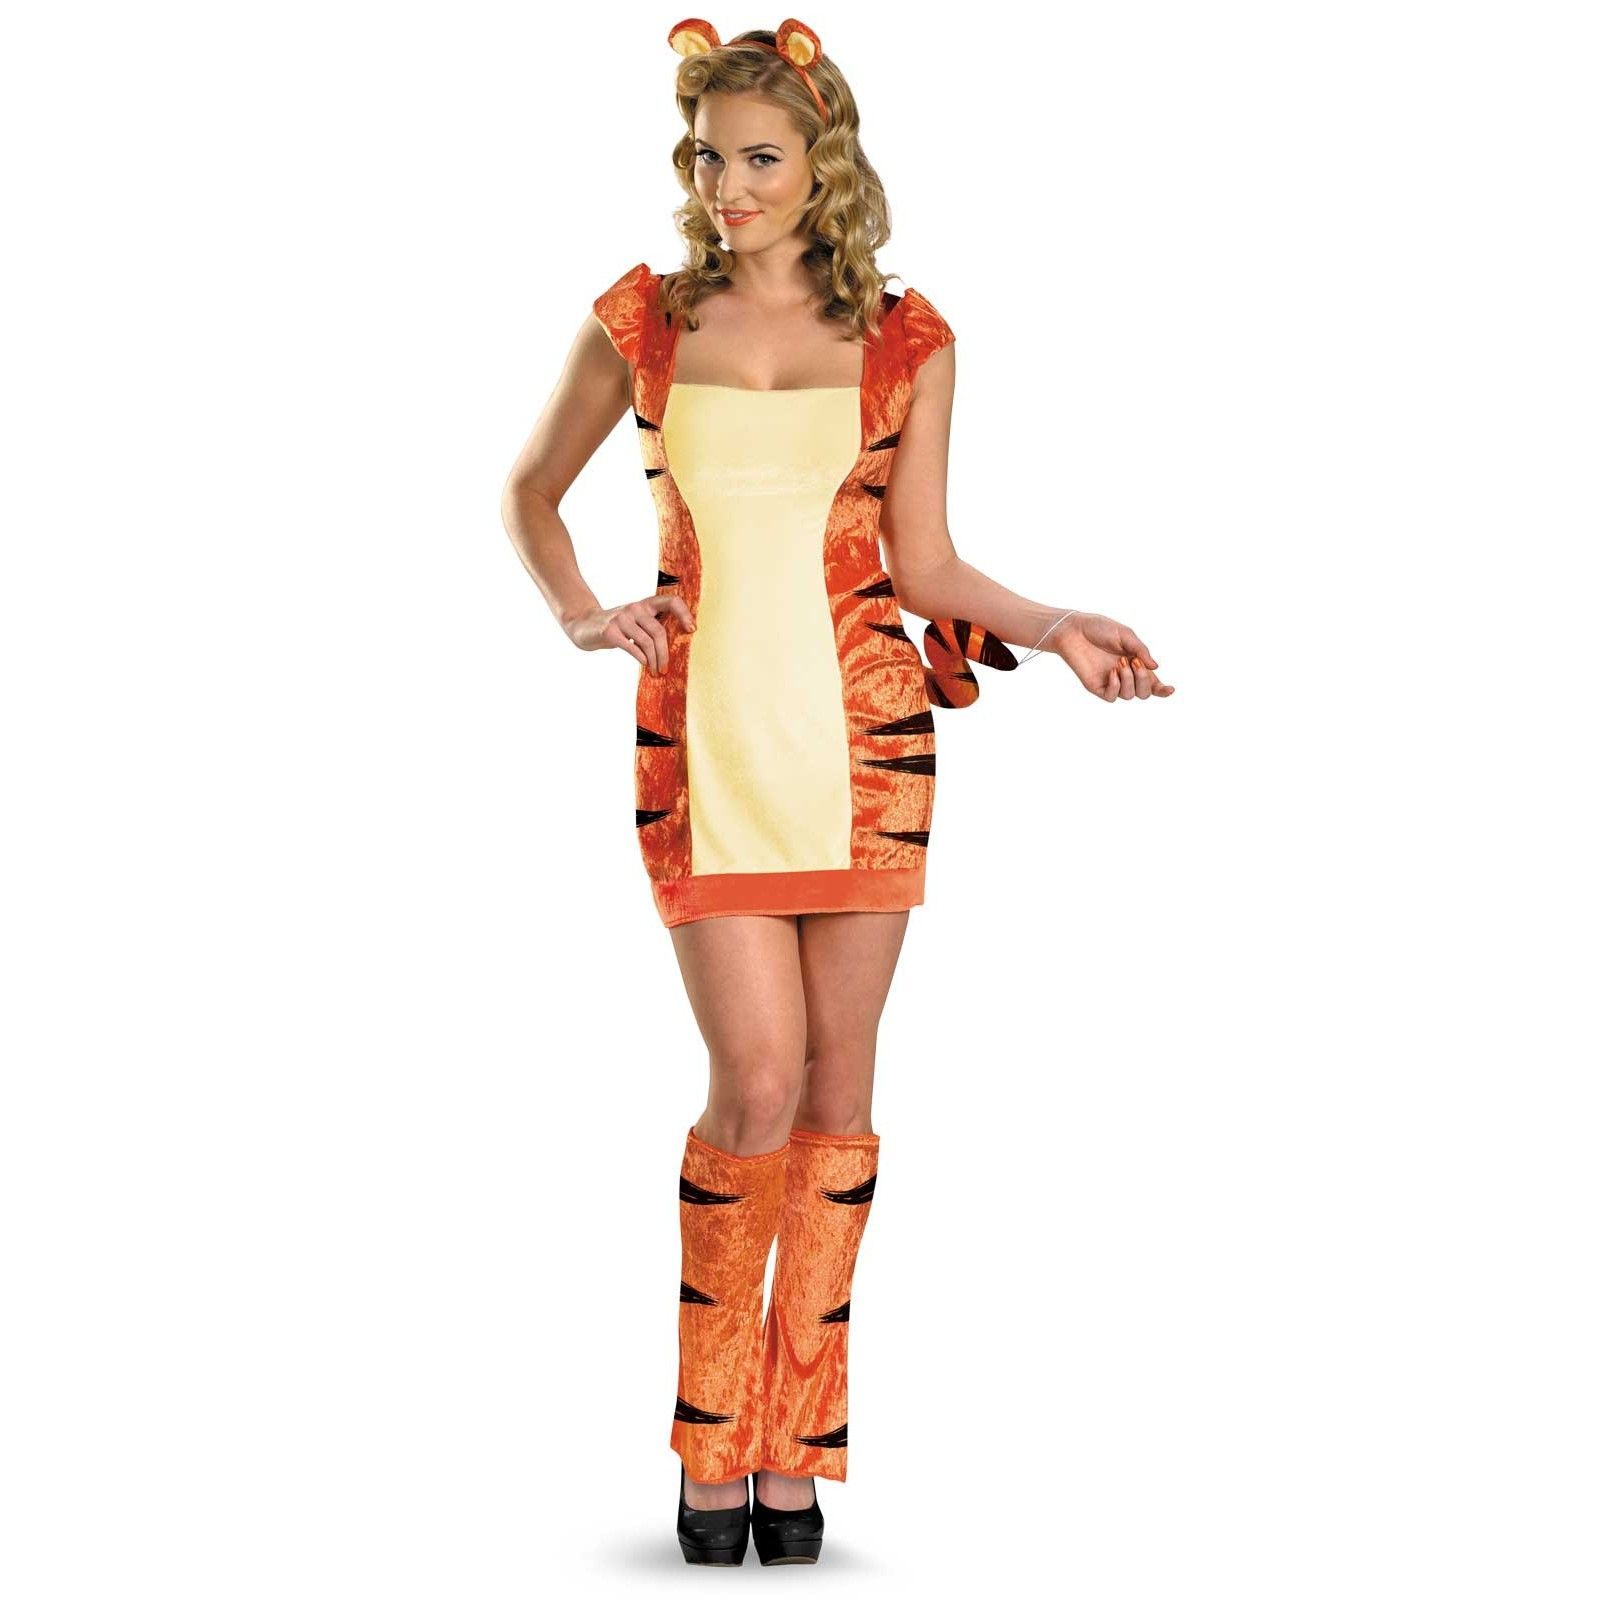 Urban Tiger Adult Costume | Costumes, Tigger costume and Halloween ...